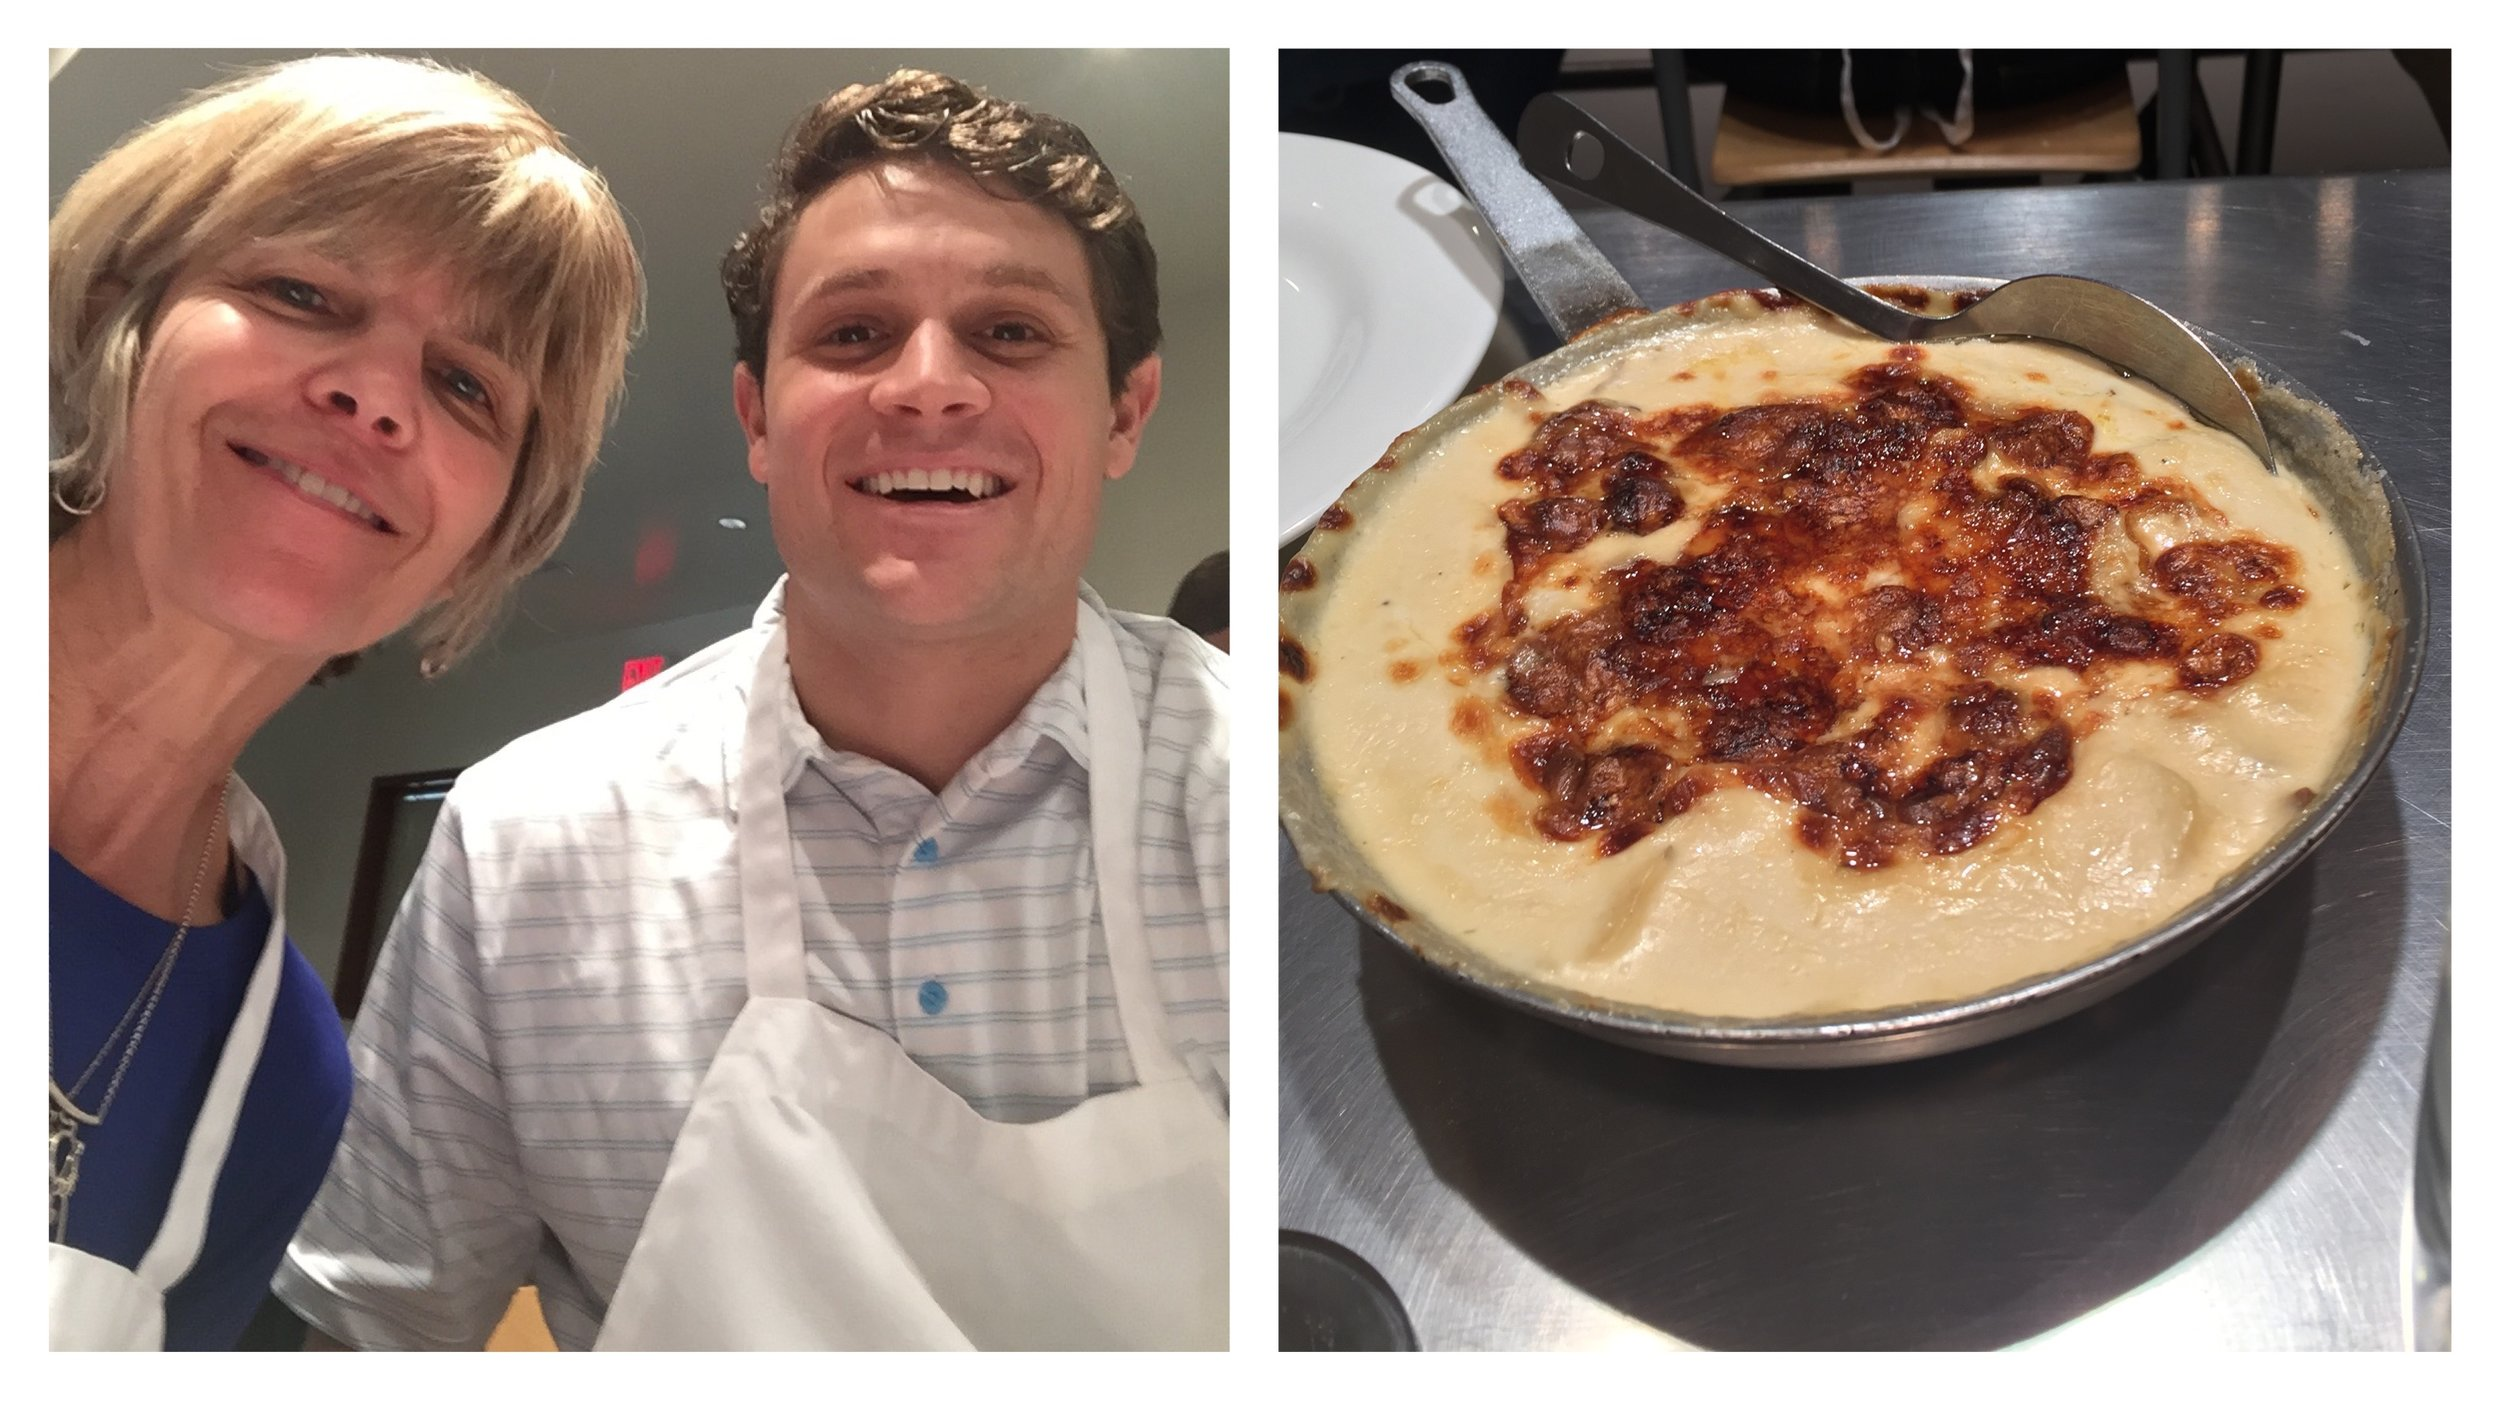 Jordan and I liked this Potato Gratin we made in our cooking class a lot! We'll be adding it to our Thanksgiving table this year. Want the recipe? Read on!